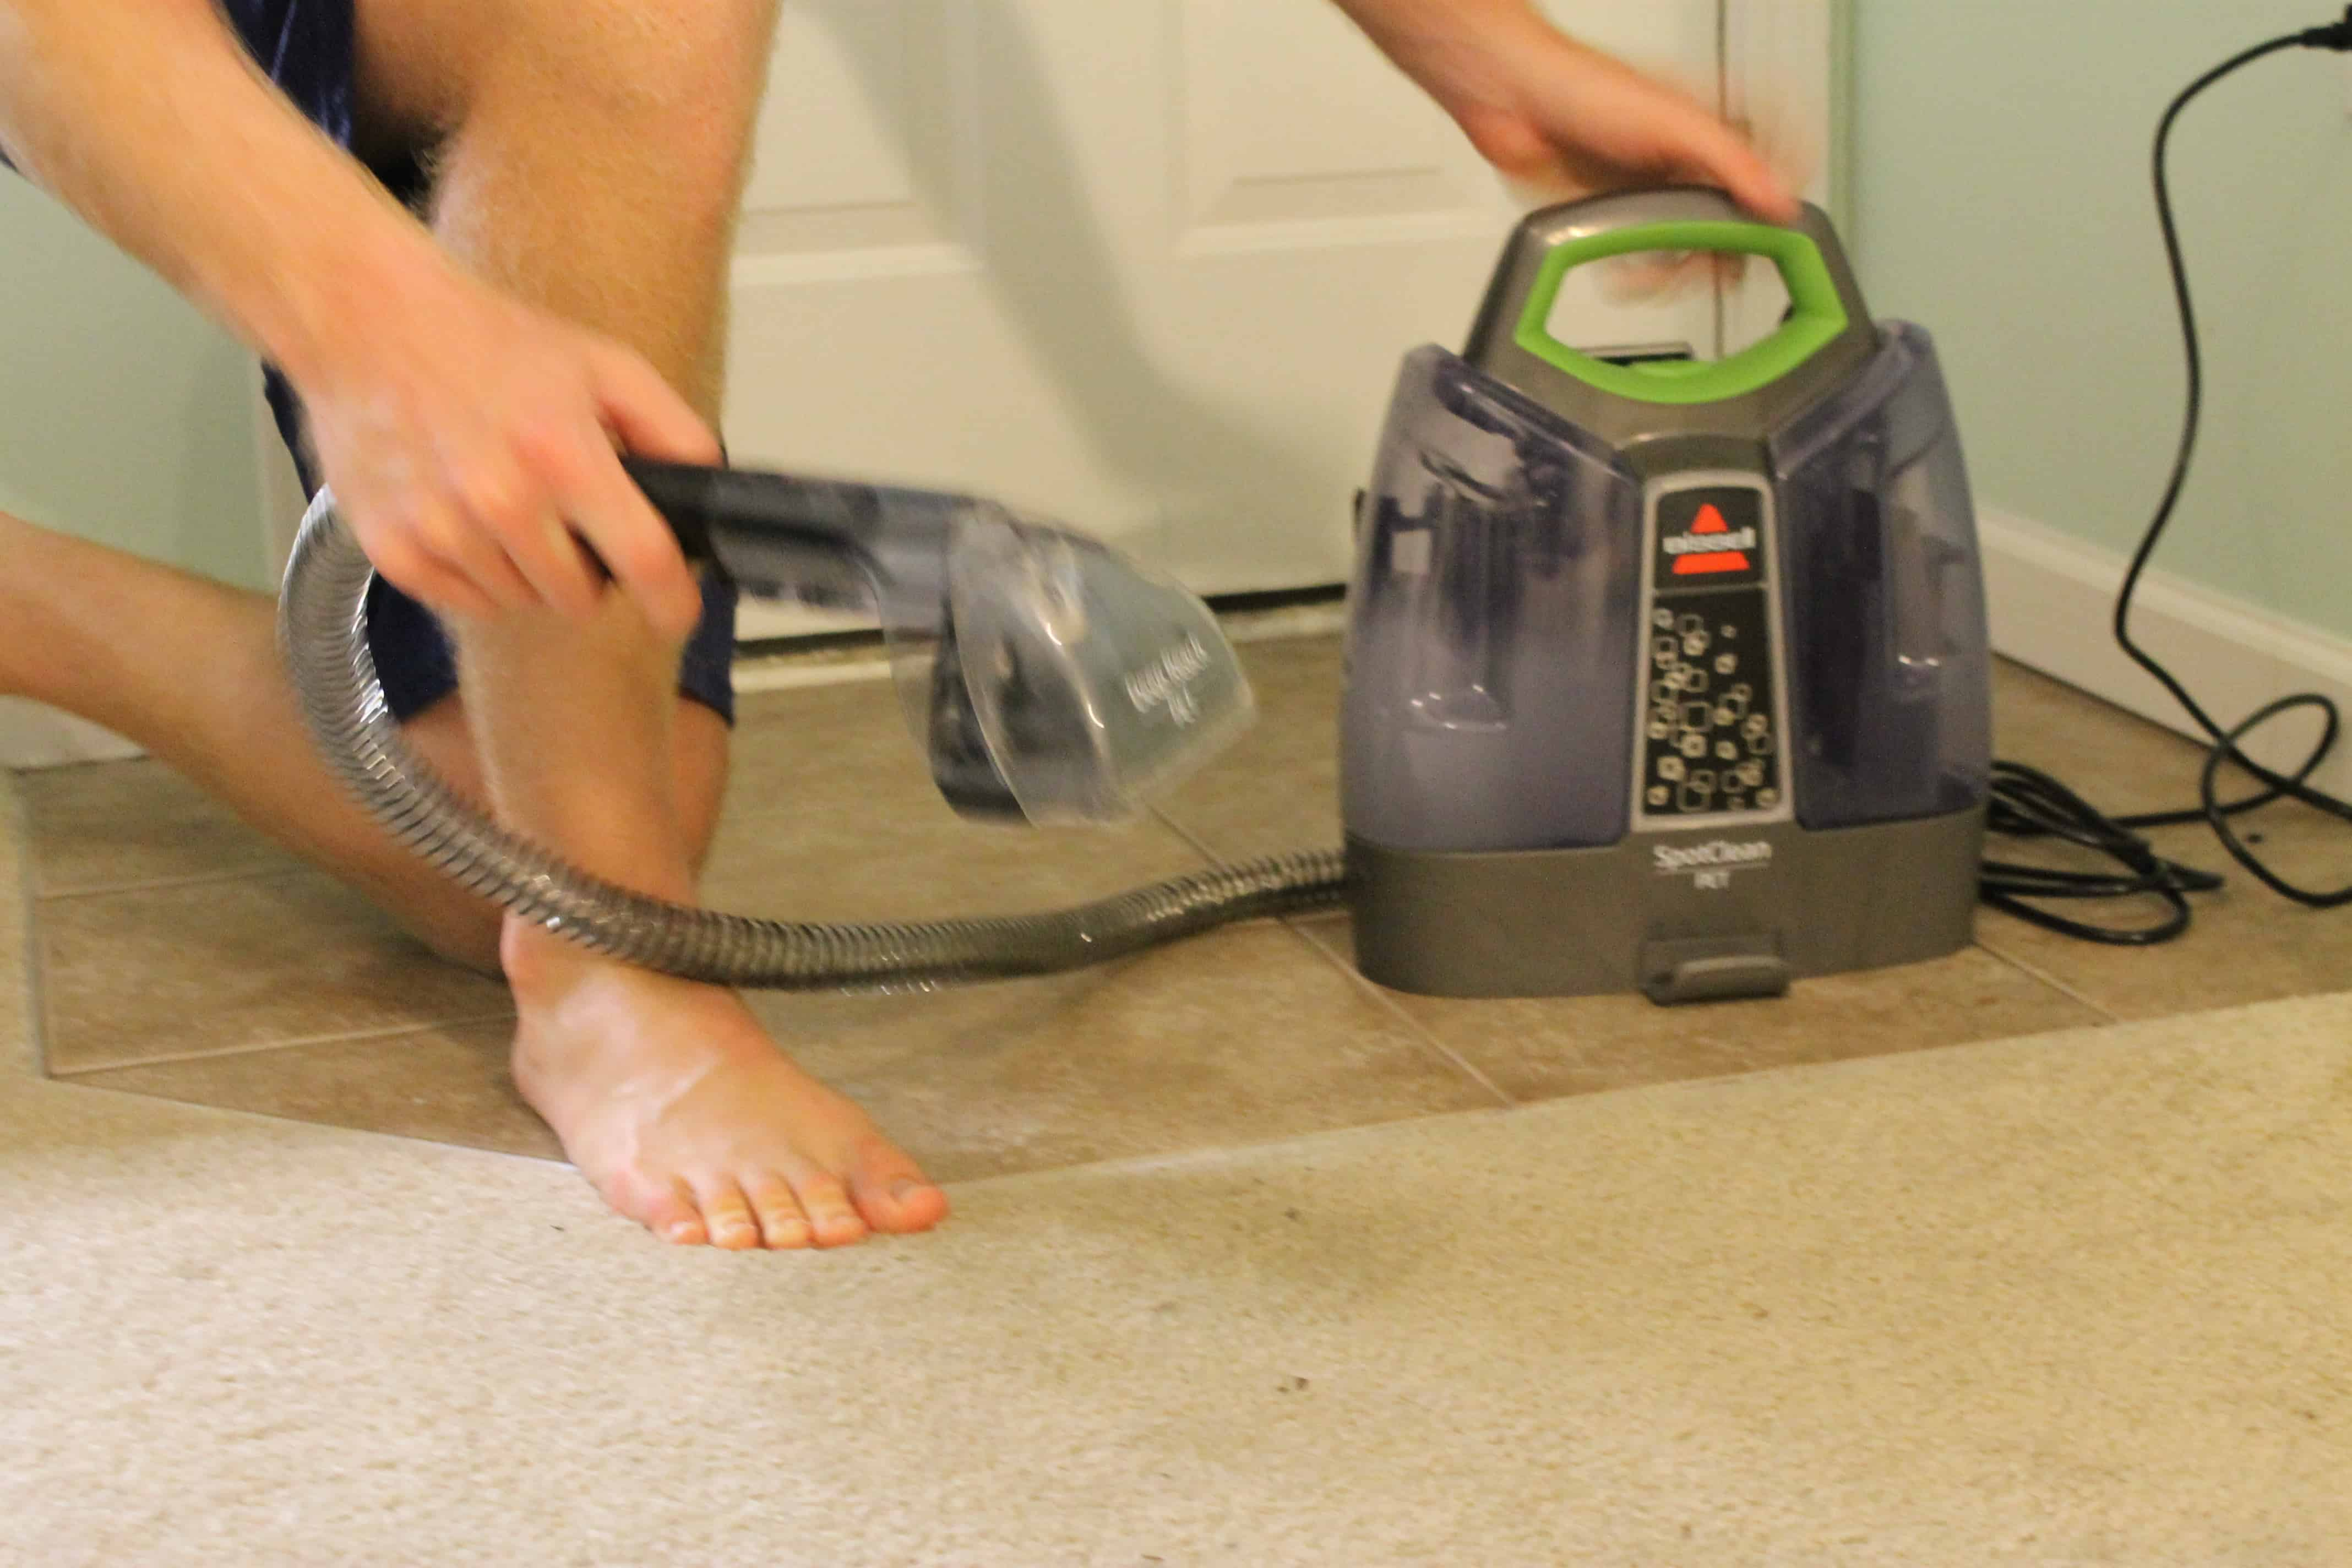 Bissell Spotclean Cleaner Review